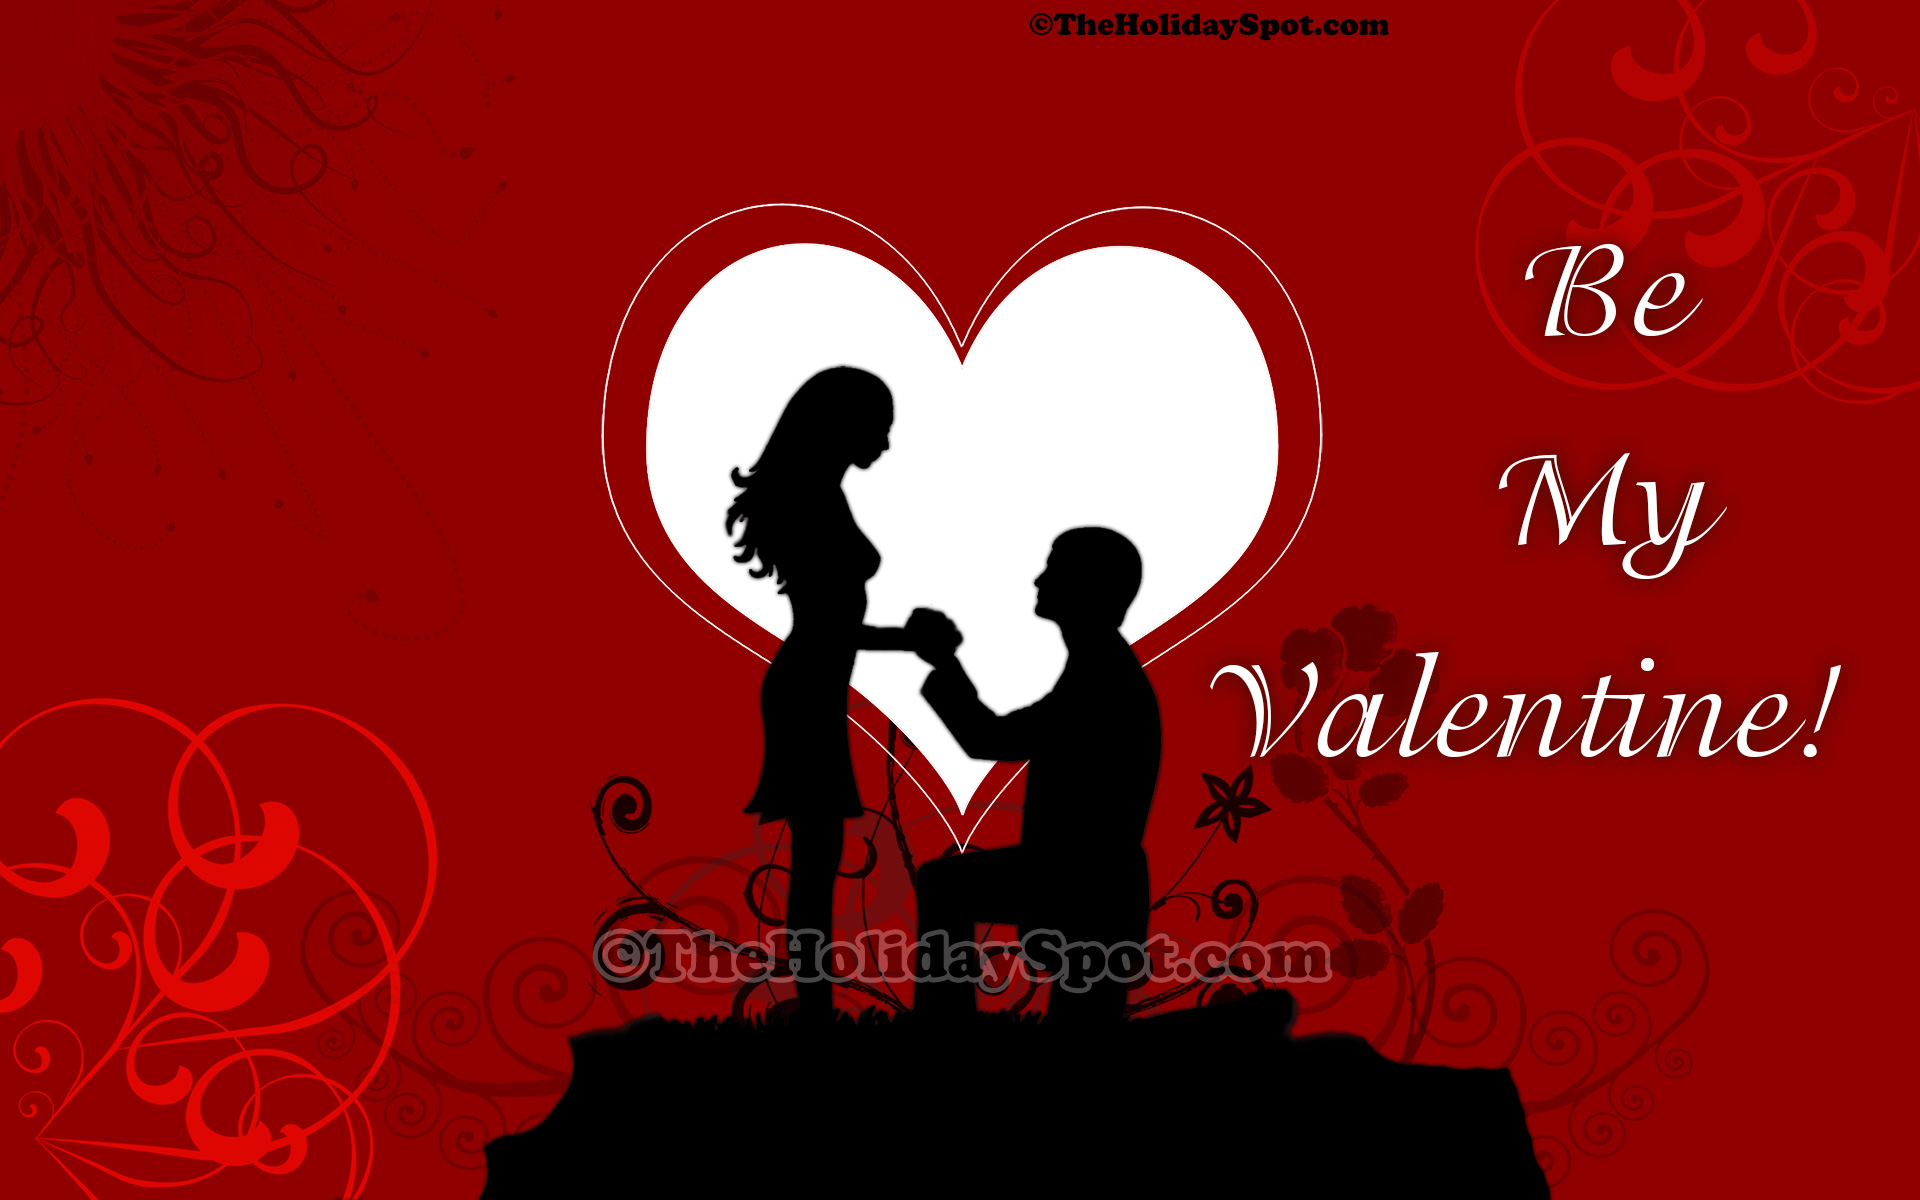 Velantine Day Wallpaper